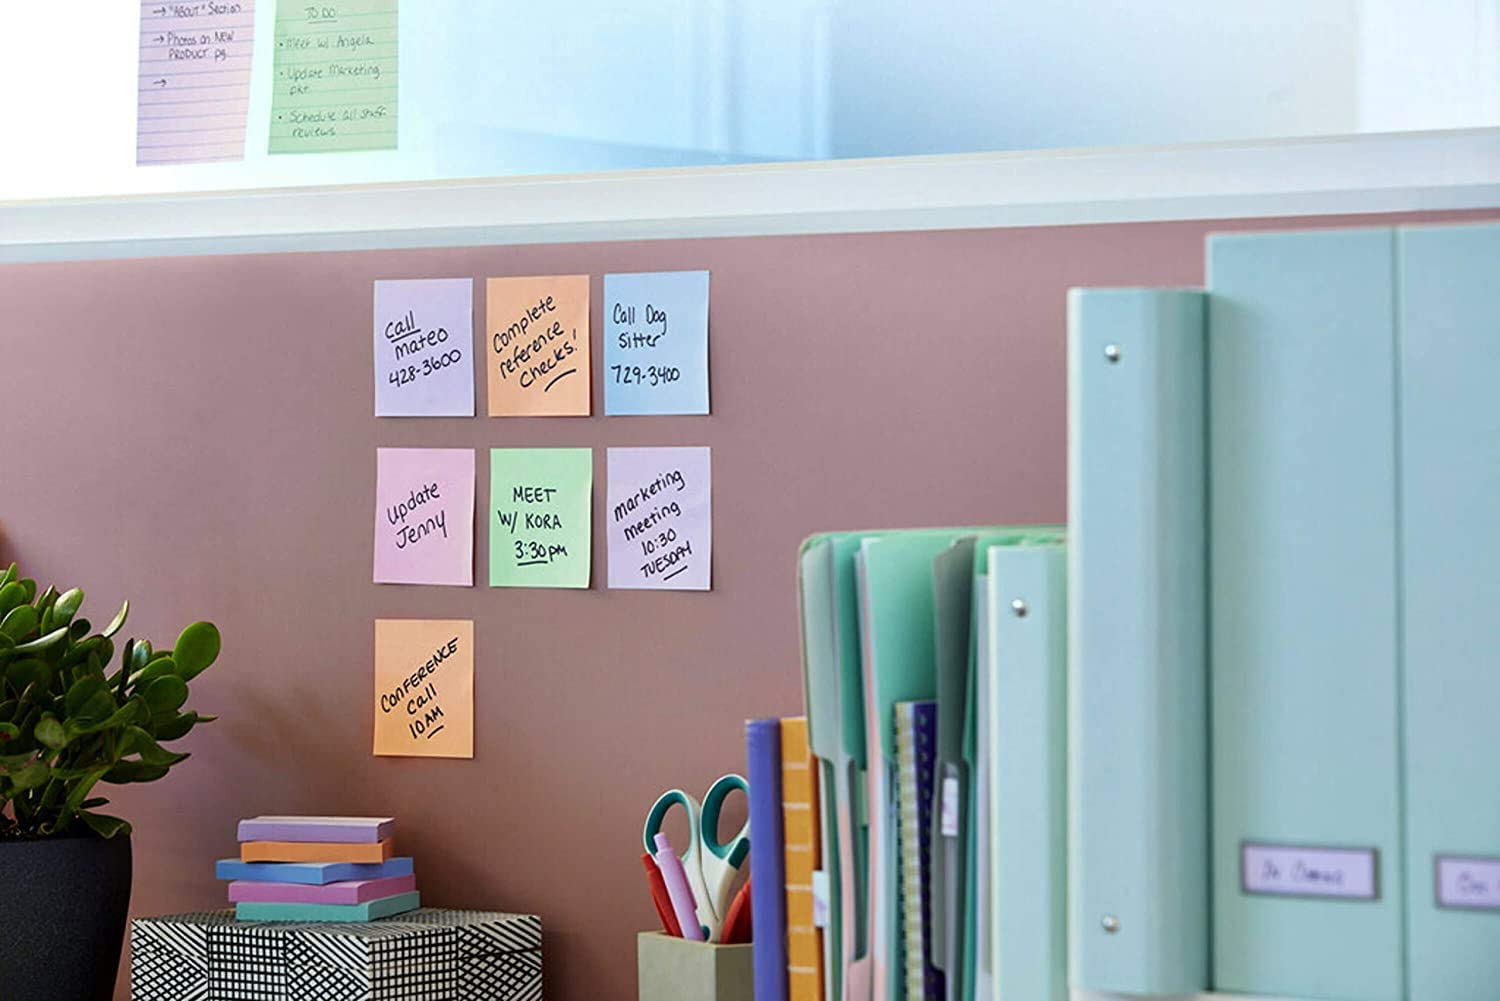 3x3 in Lavender, Apricot, Blue, Pink, Mint Pastel Colors 6 Pads 654-6SSNRP Post-it Super Sticky Recycled Notes Bali Collection 2X The Sticking Power 30/% Recycled Paper - New